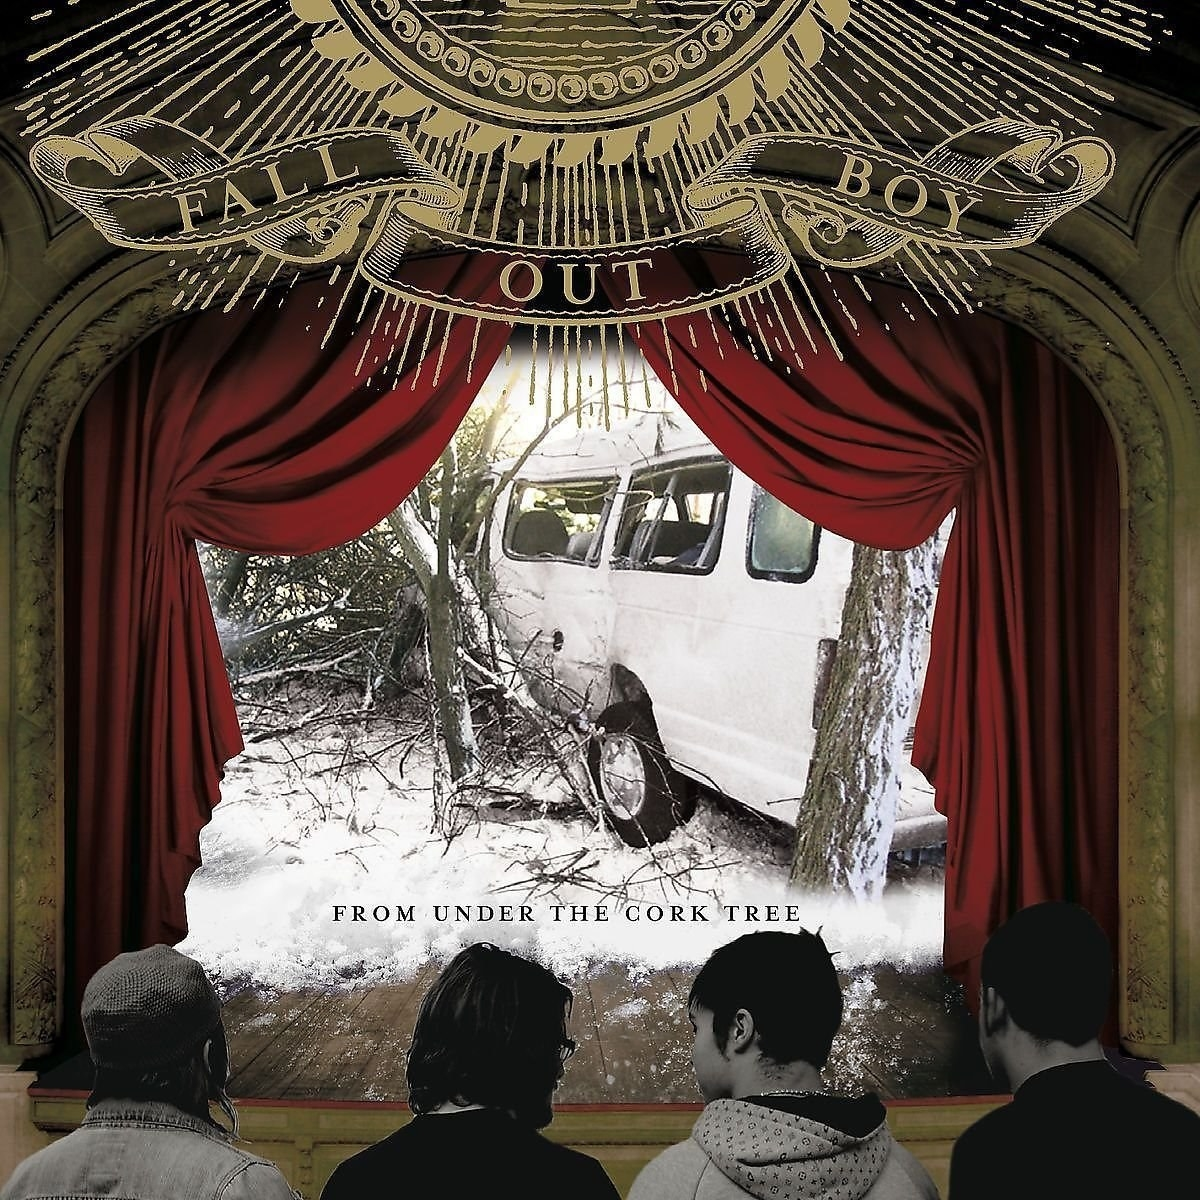 alternative album cover of From Under the Cork Tree showing the backs of people's head as they face a stage